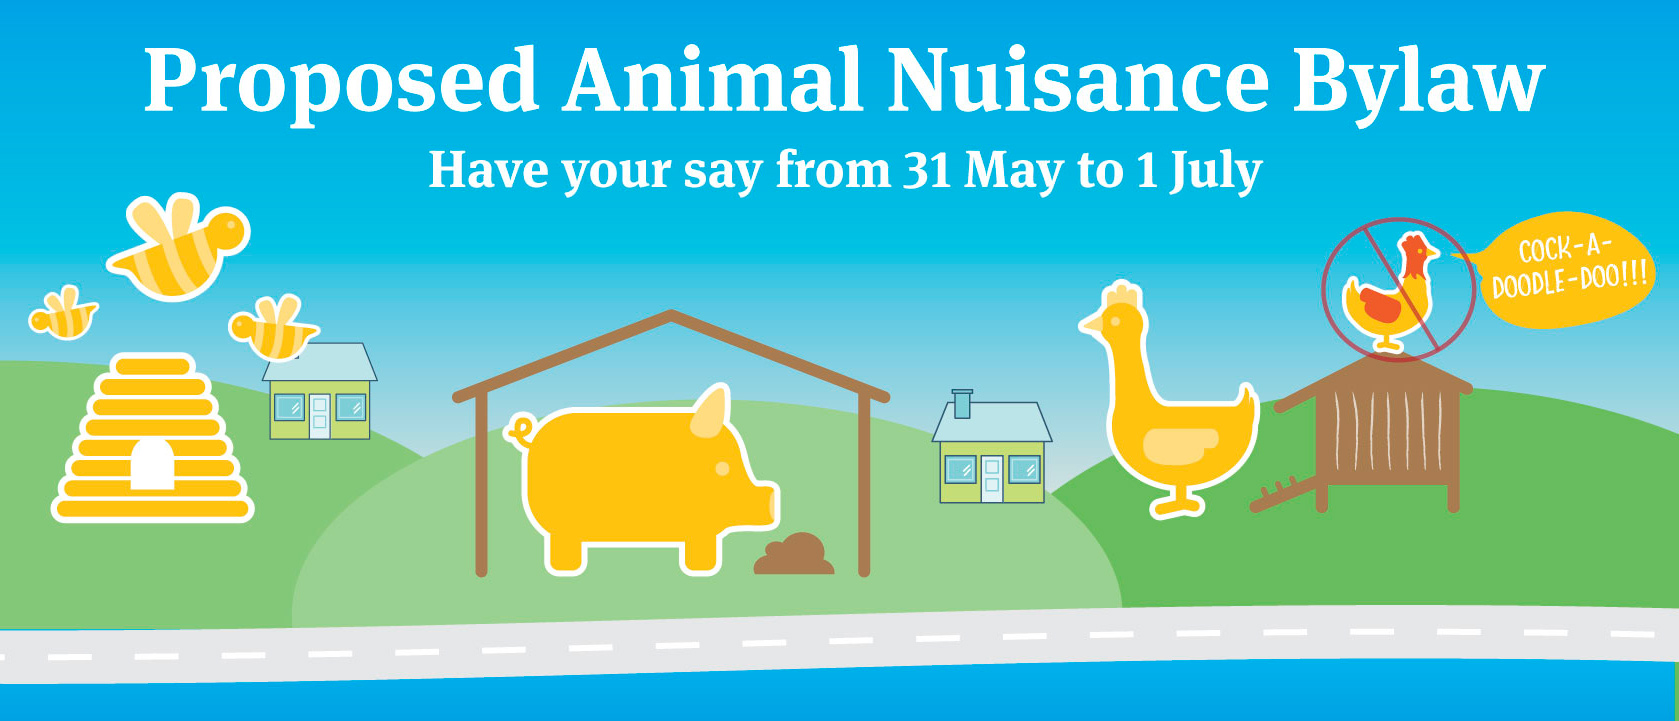 Animal Nuisance Bylaw web banner